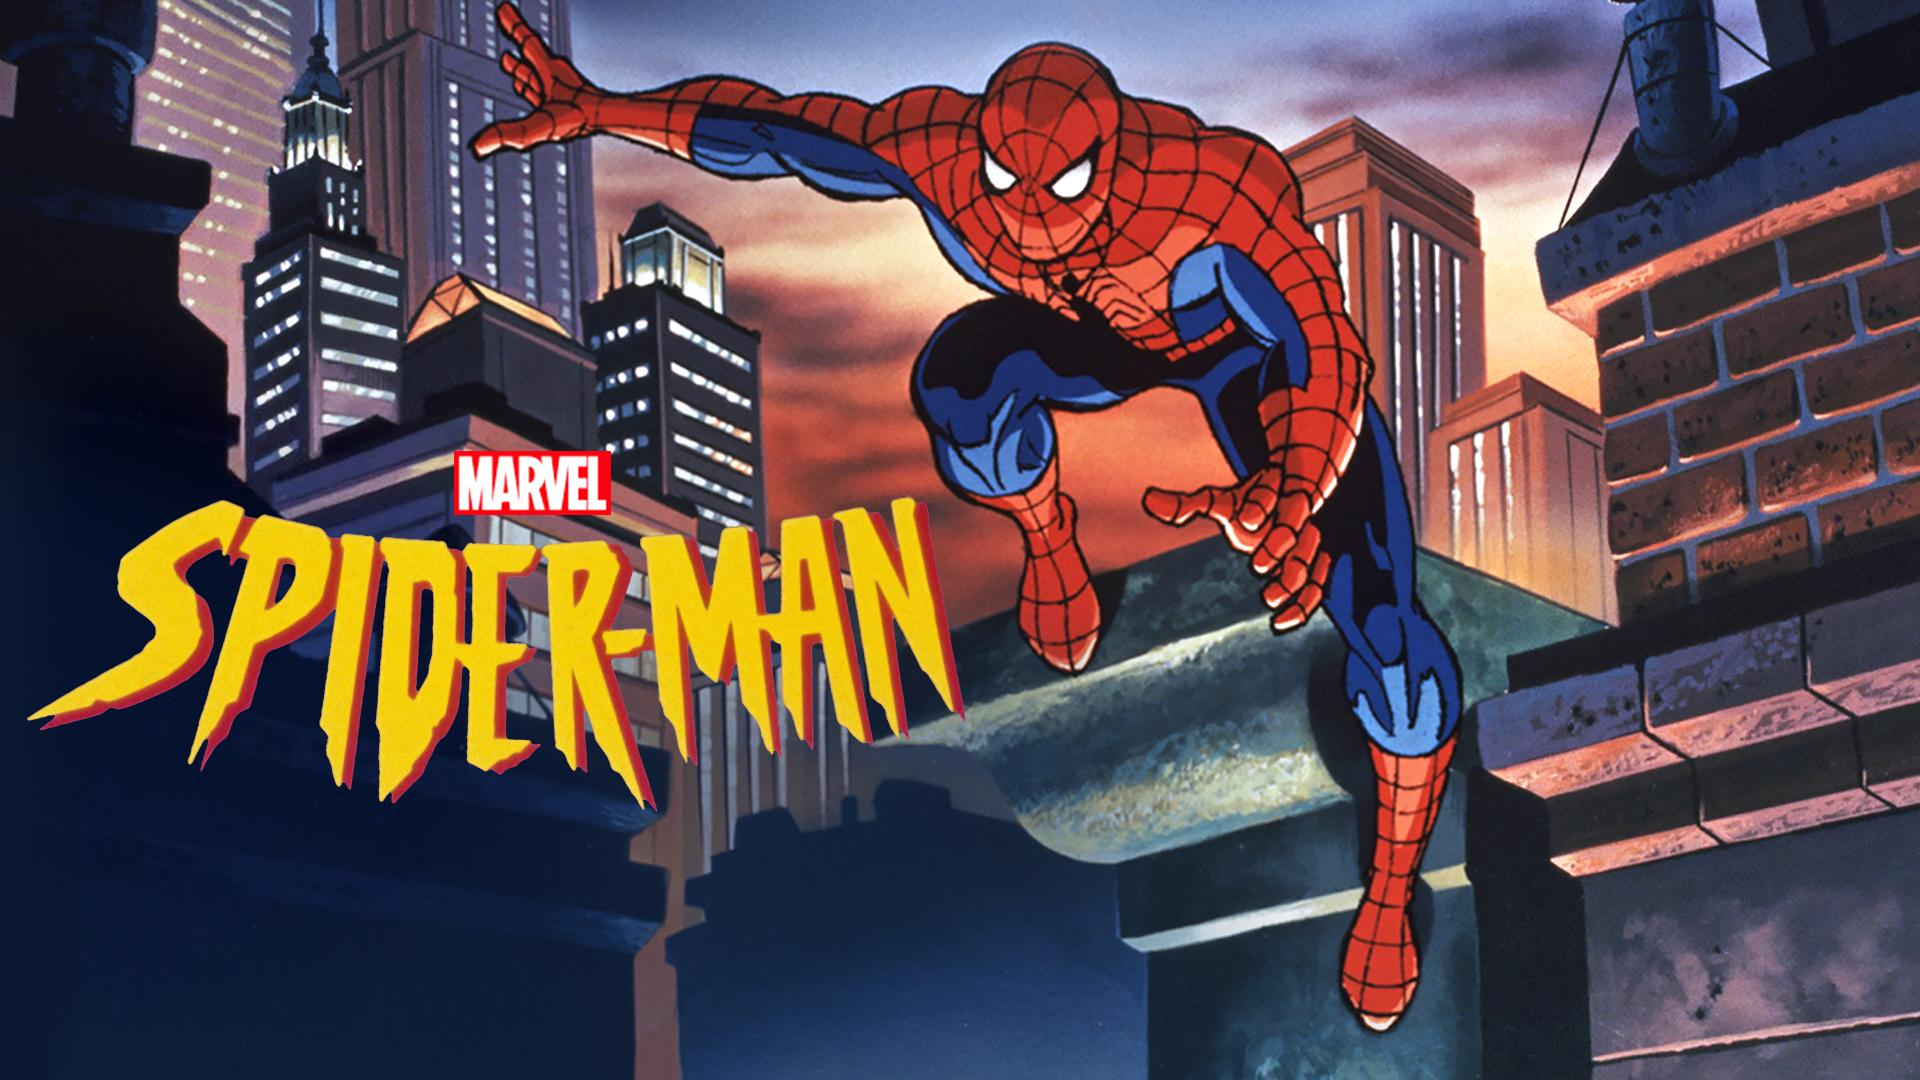 Spider Man Series 1994 - Marvel en Disney Plus